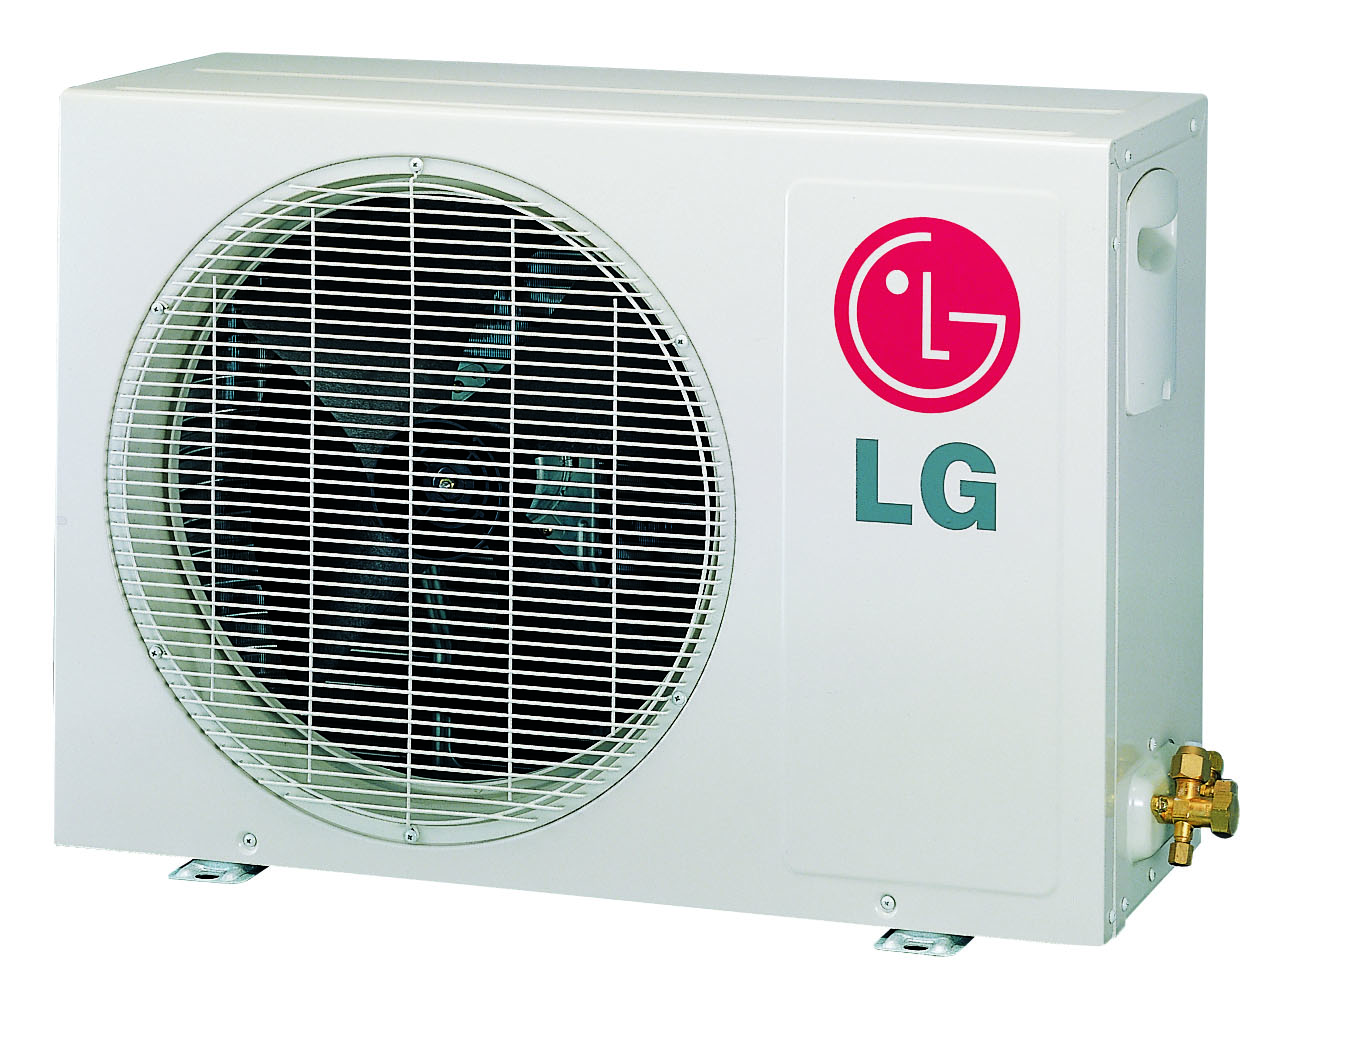 split air conditioning system lg p03ah 28 000btu floor standing split #CB0046